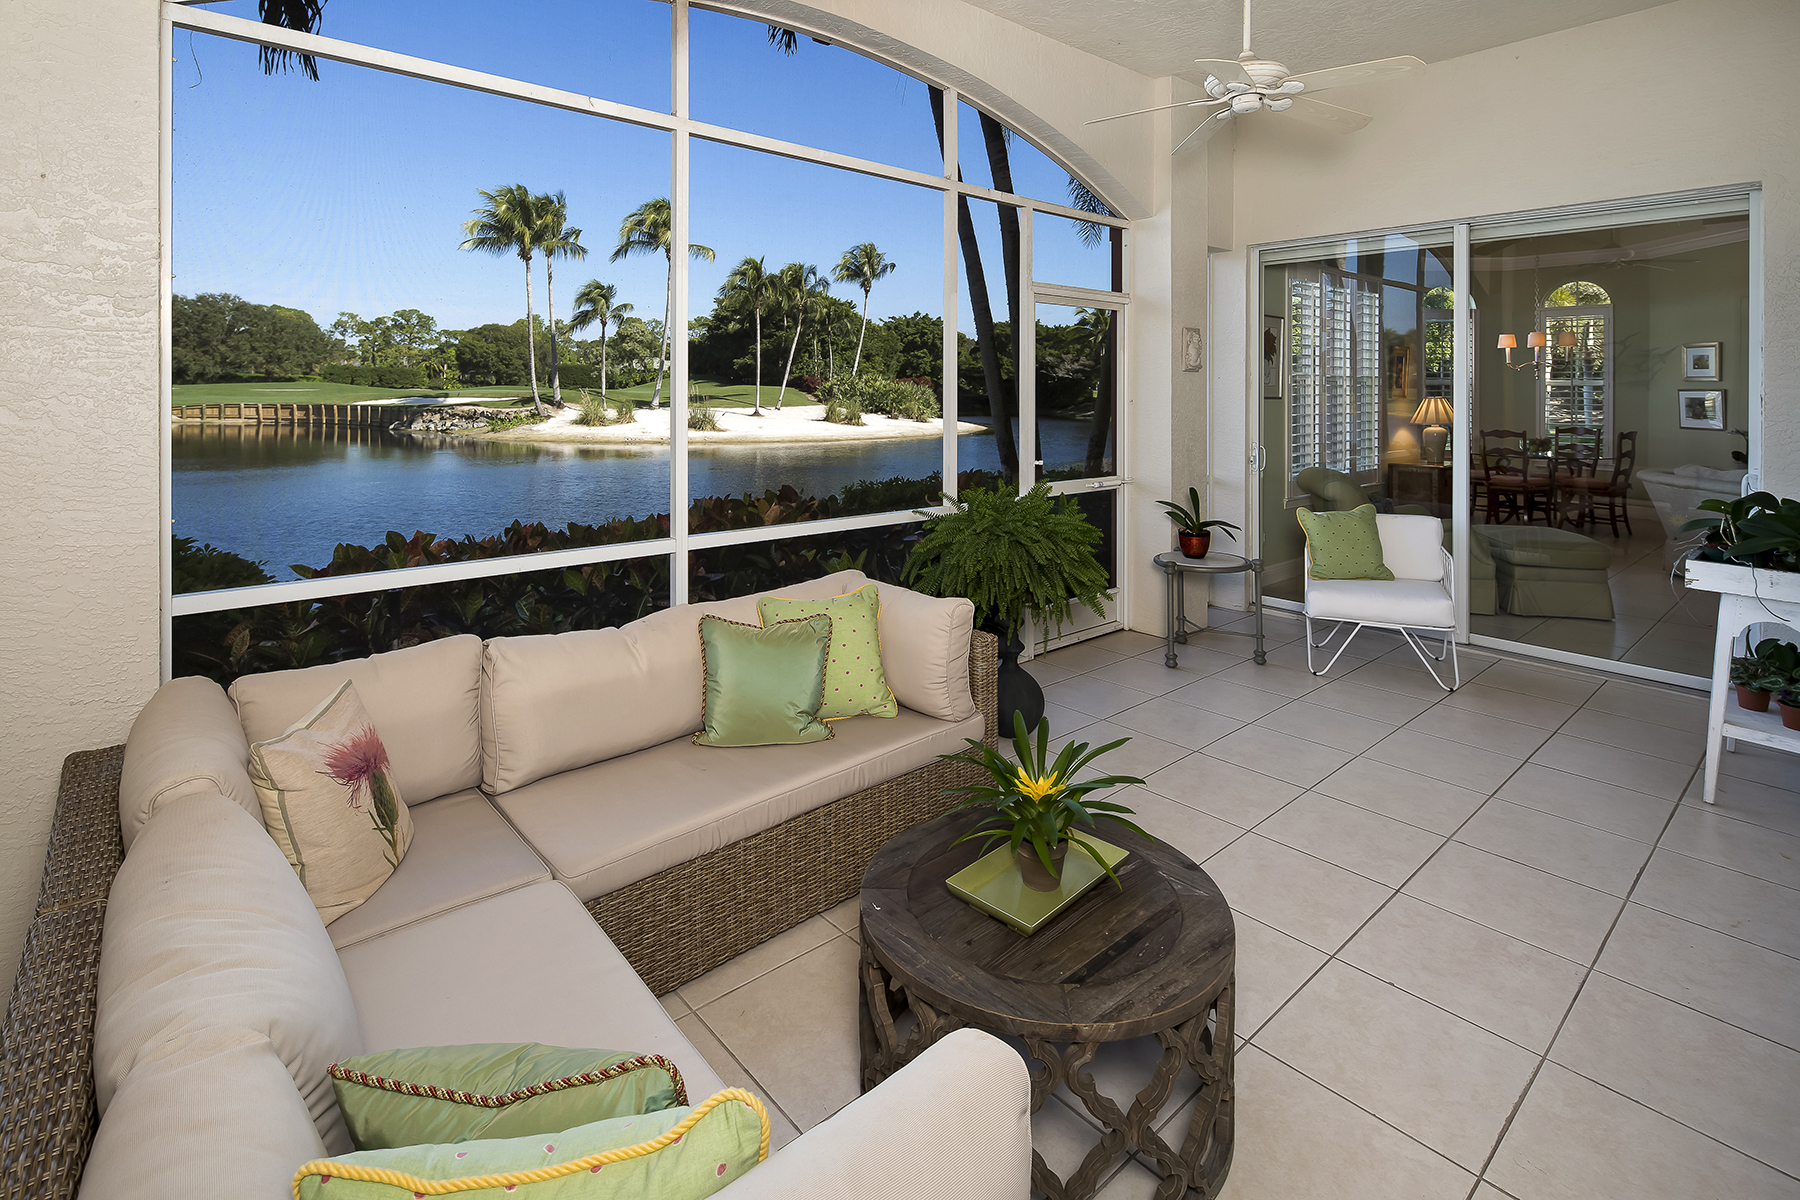 Condominium for Sale at GREY OAKS - TERRA VERDE 2394 Terra Verde Ln 2394 Naples, Florida, 34105 United States